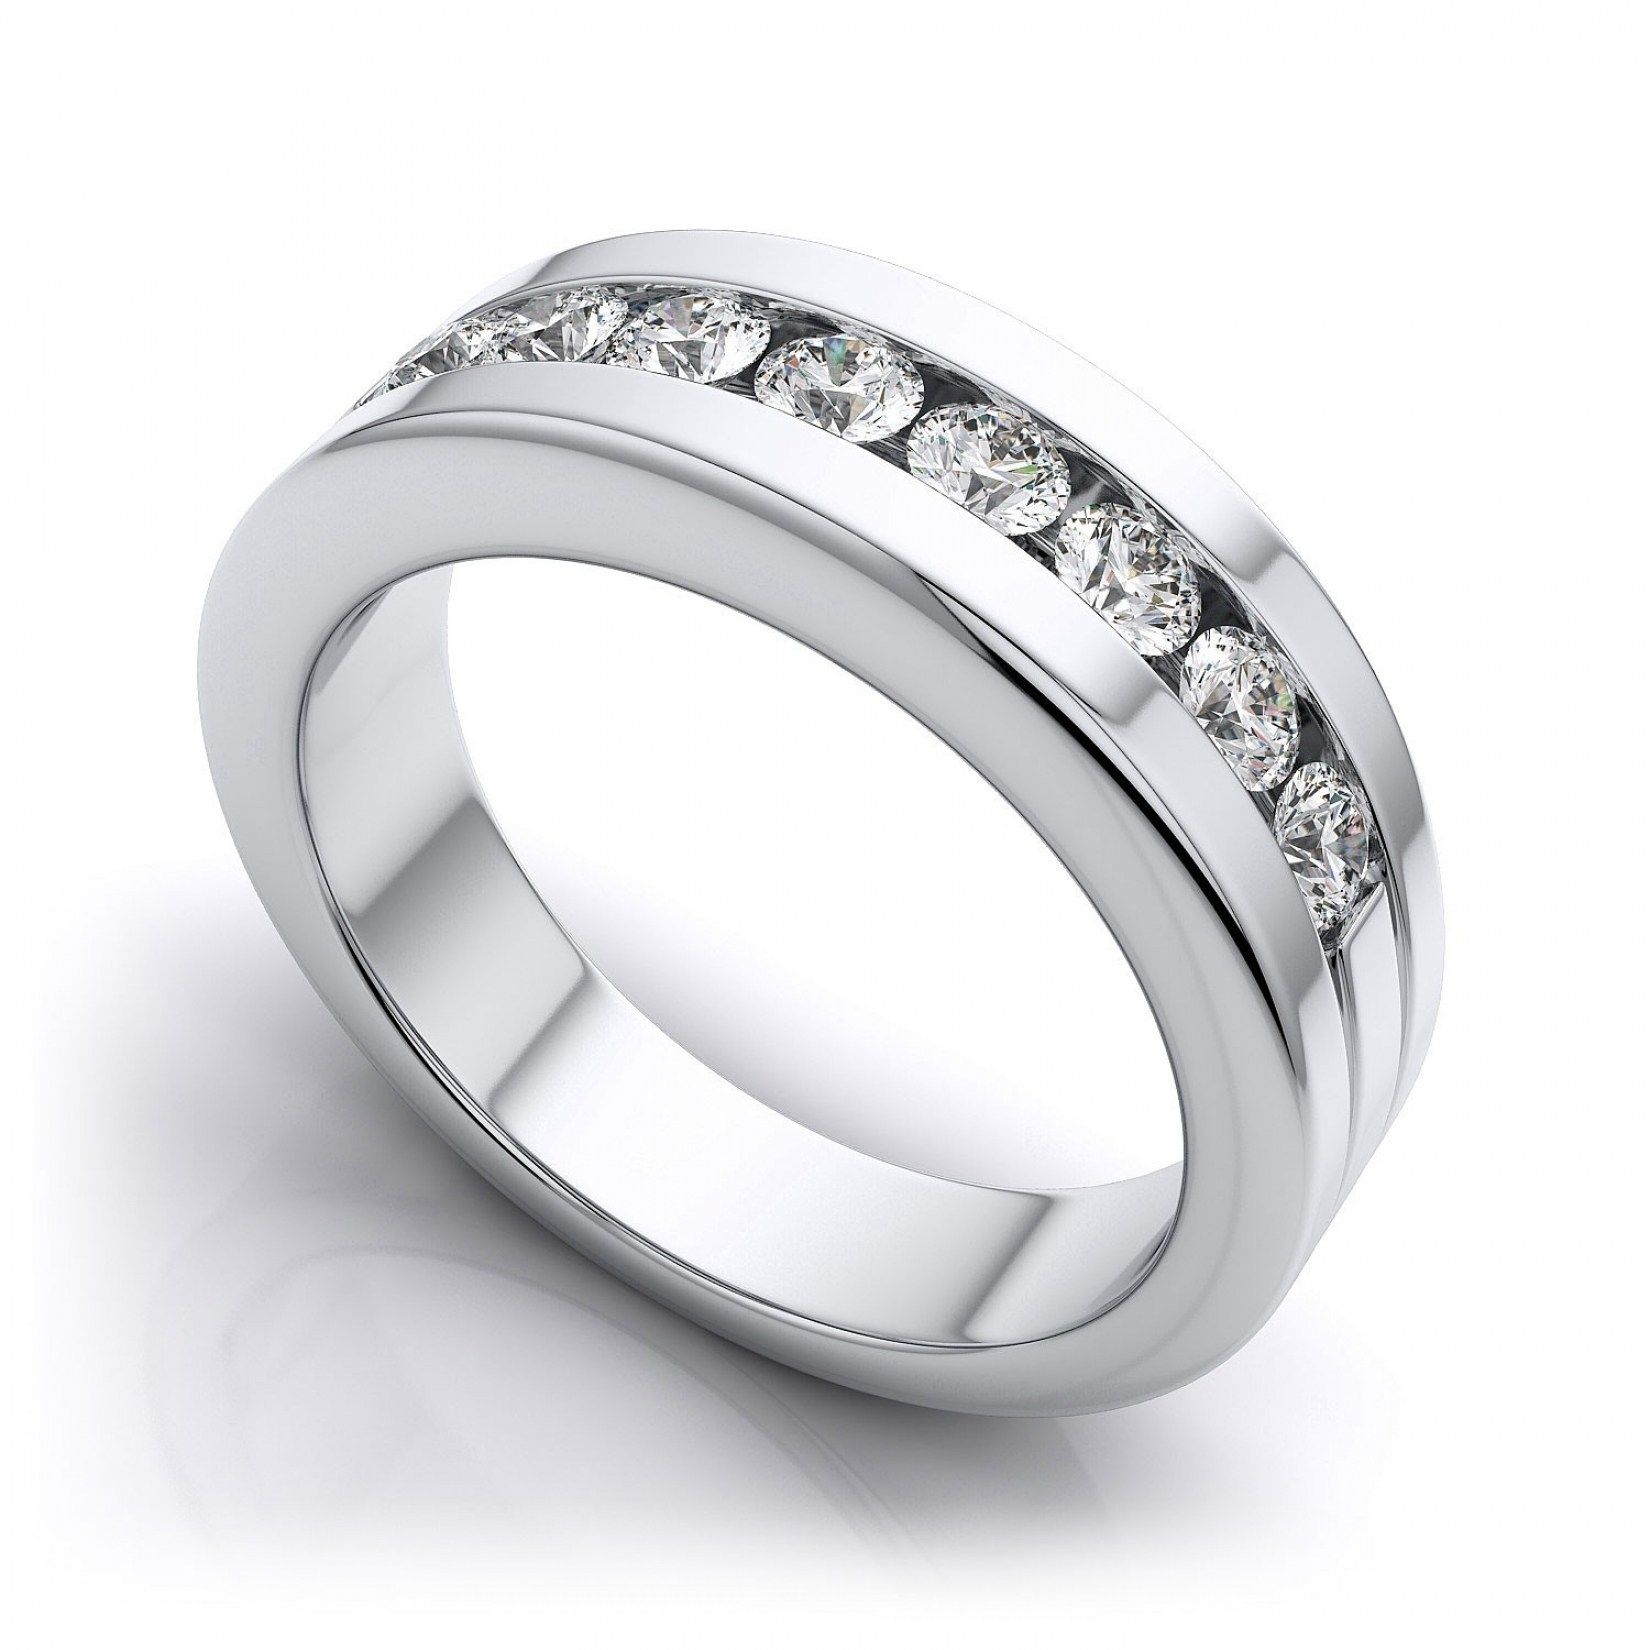 30 Best Platinum Wedding Rings For Couples Platinum wedding rings